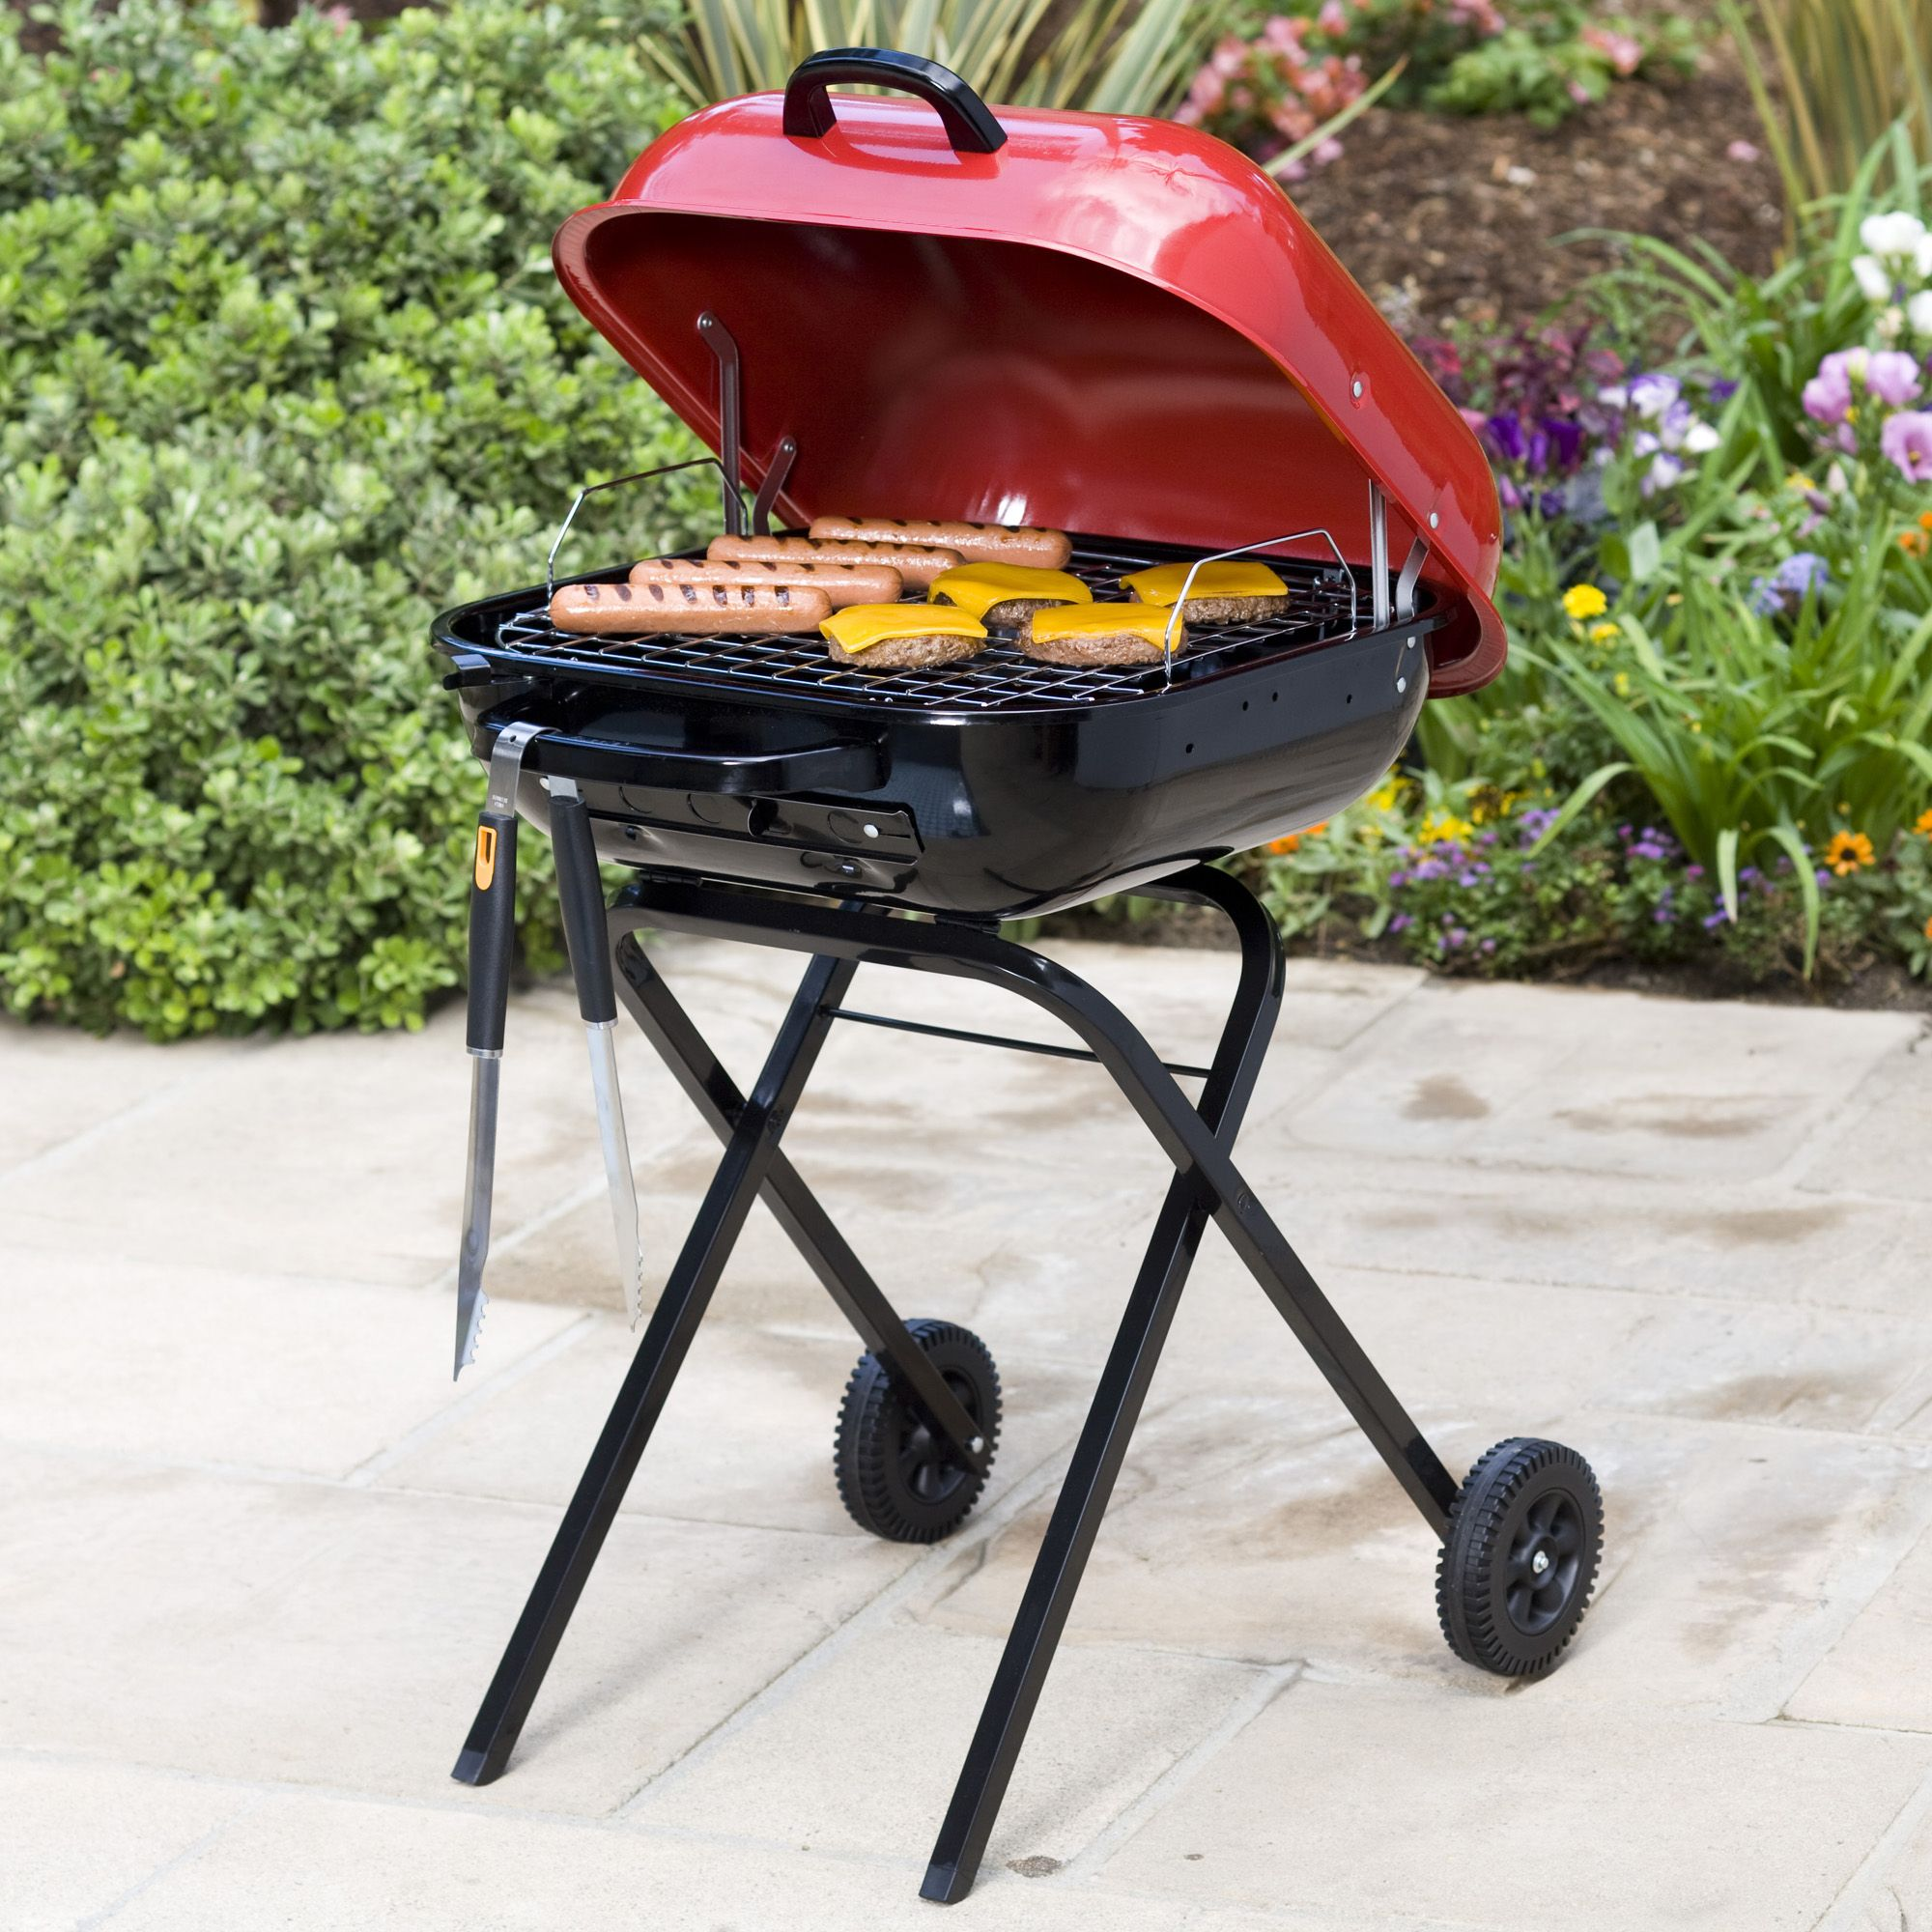 Meco Charcoal Grill